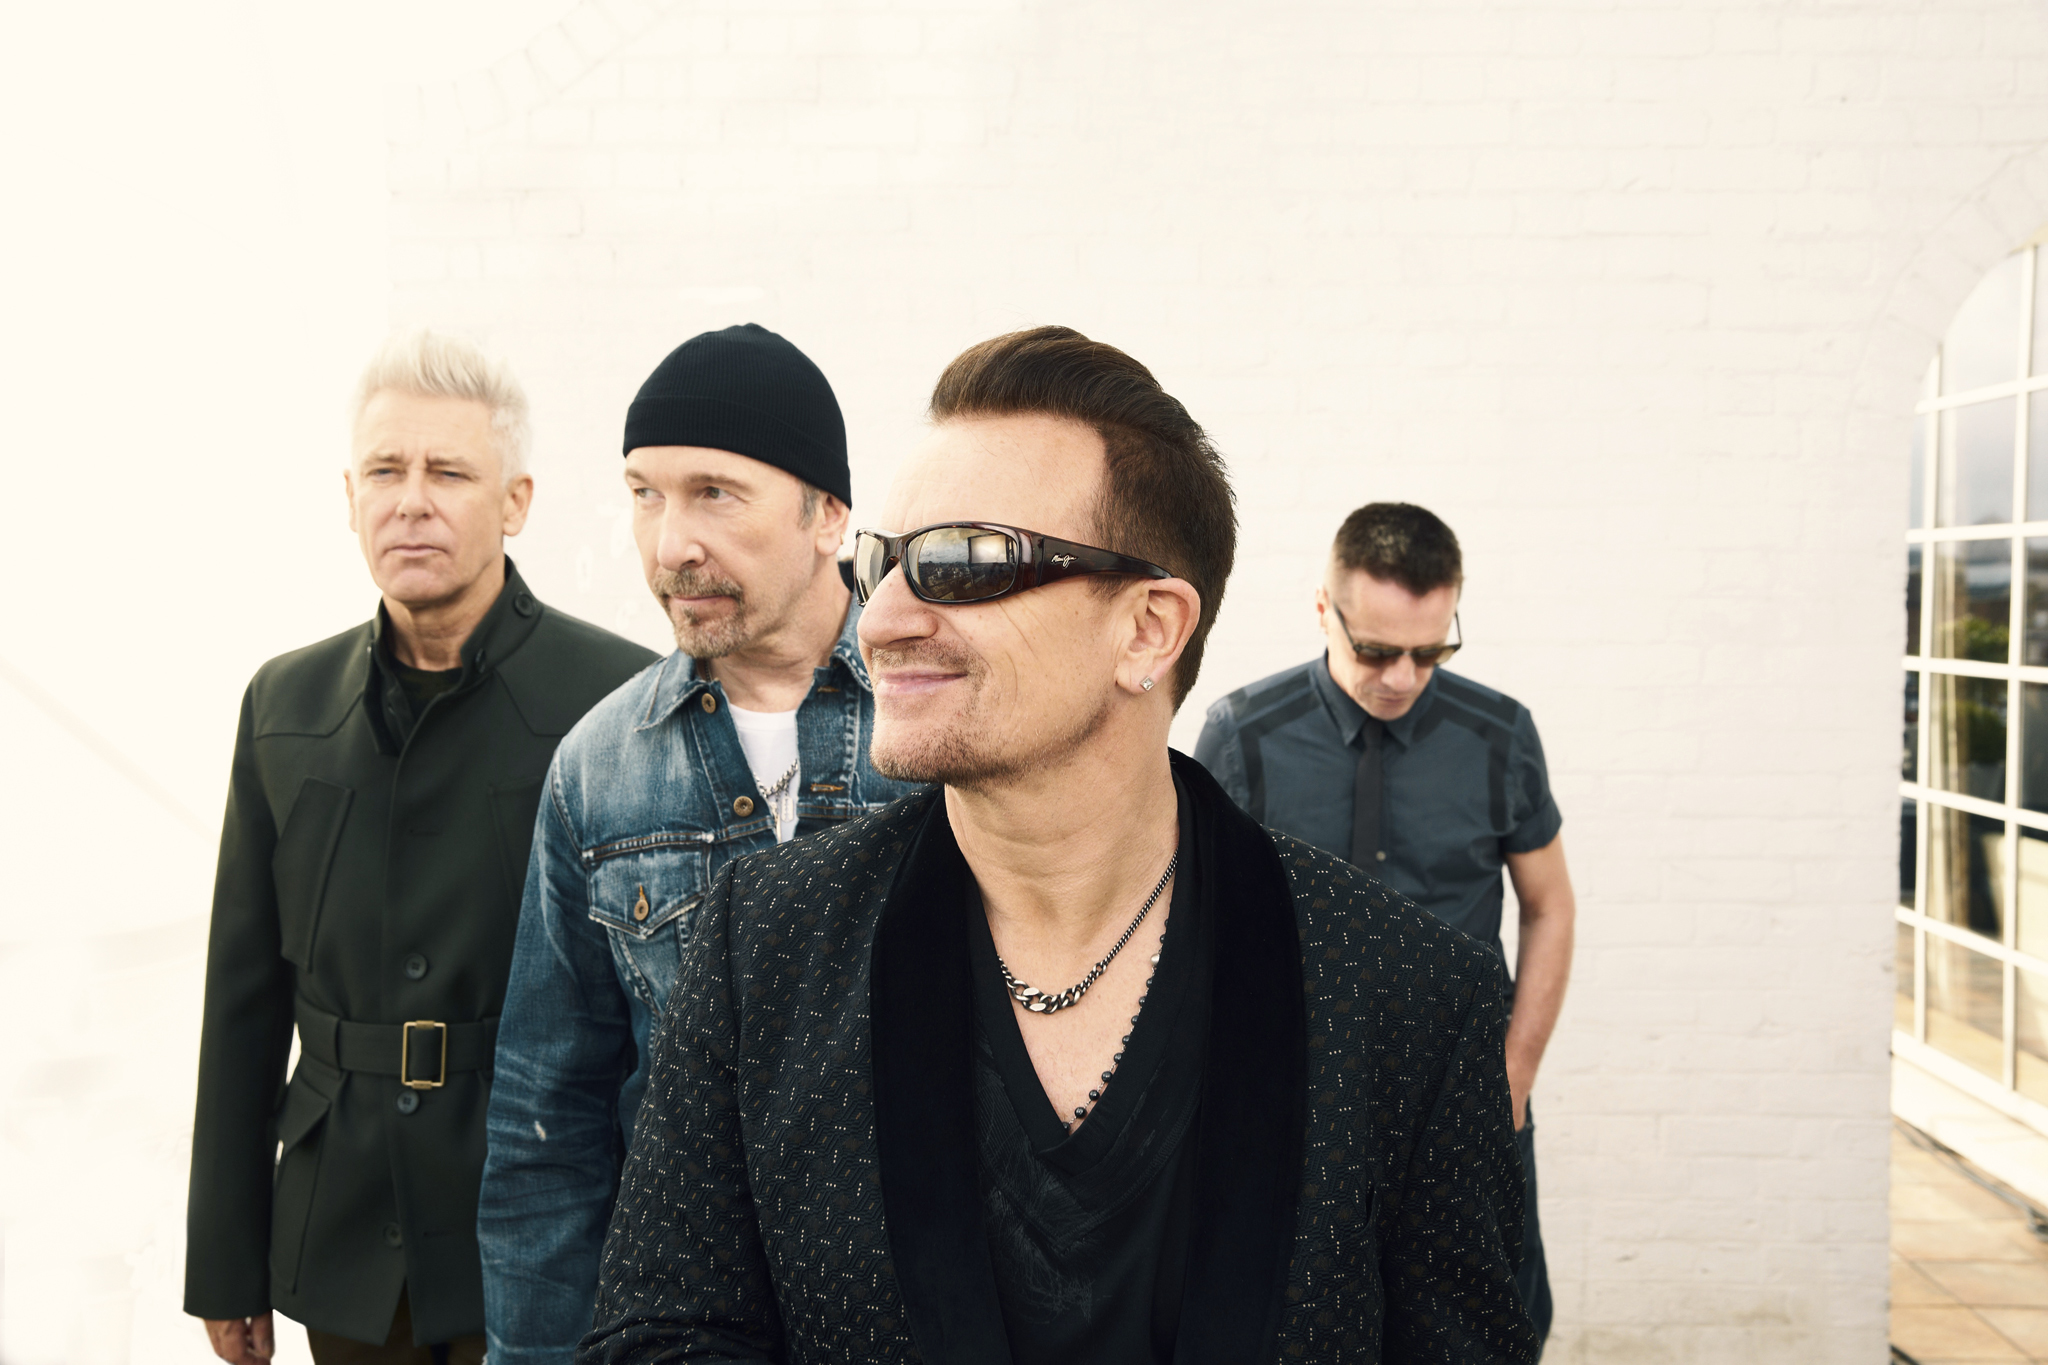 U2 played in the NYC subway last night